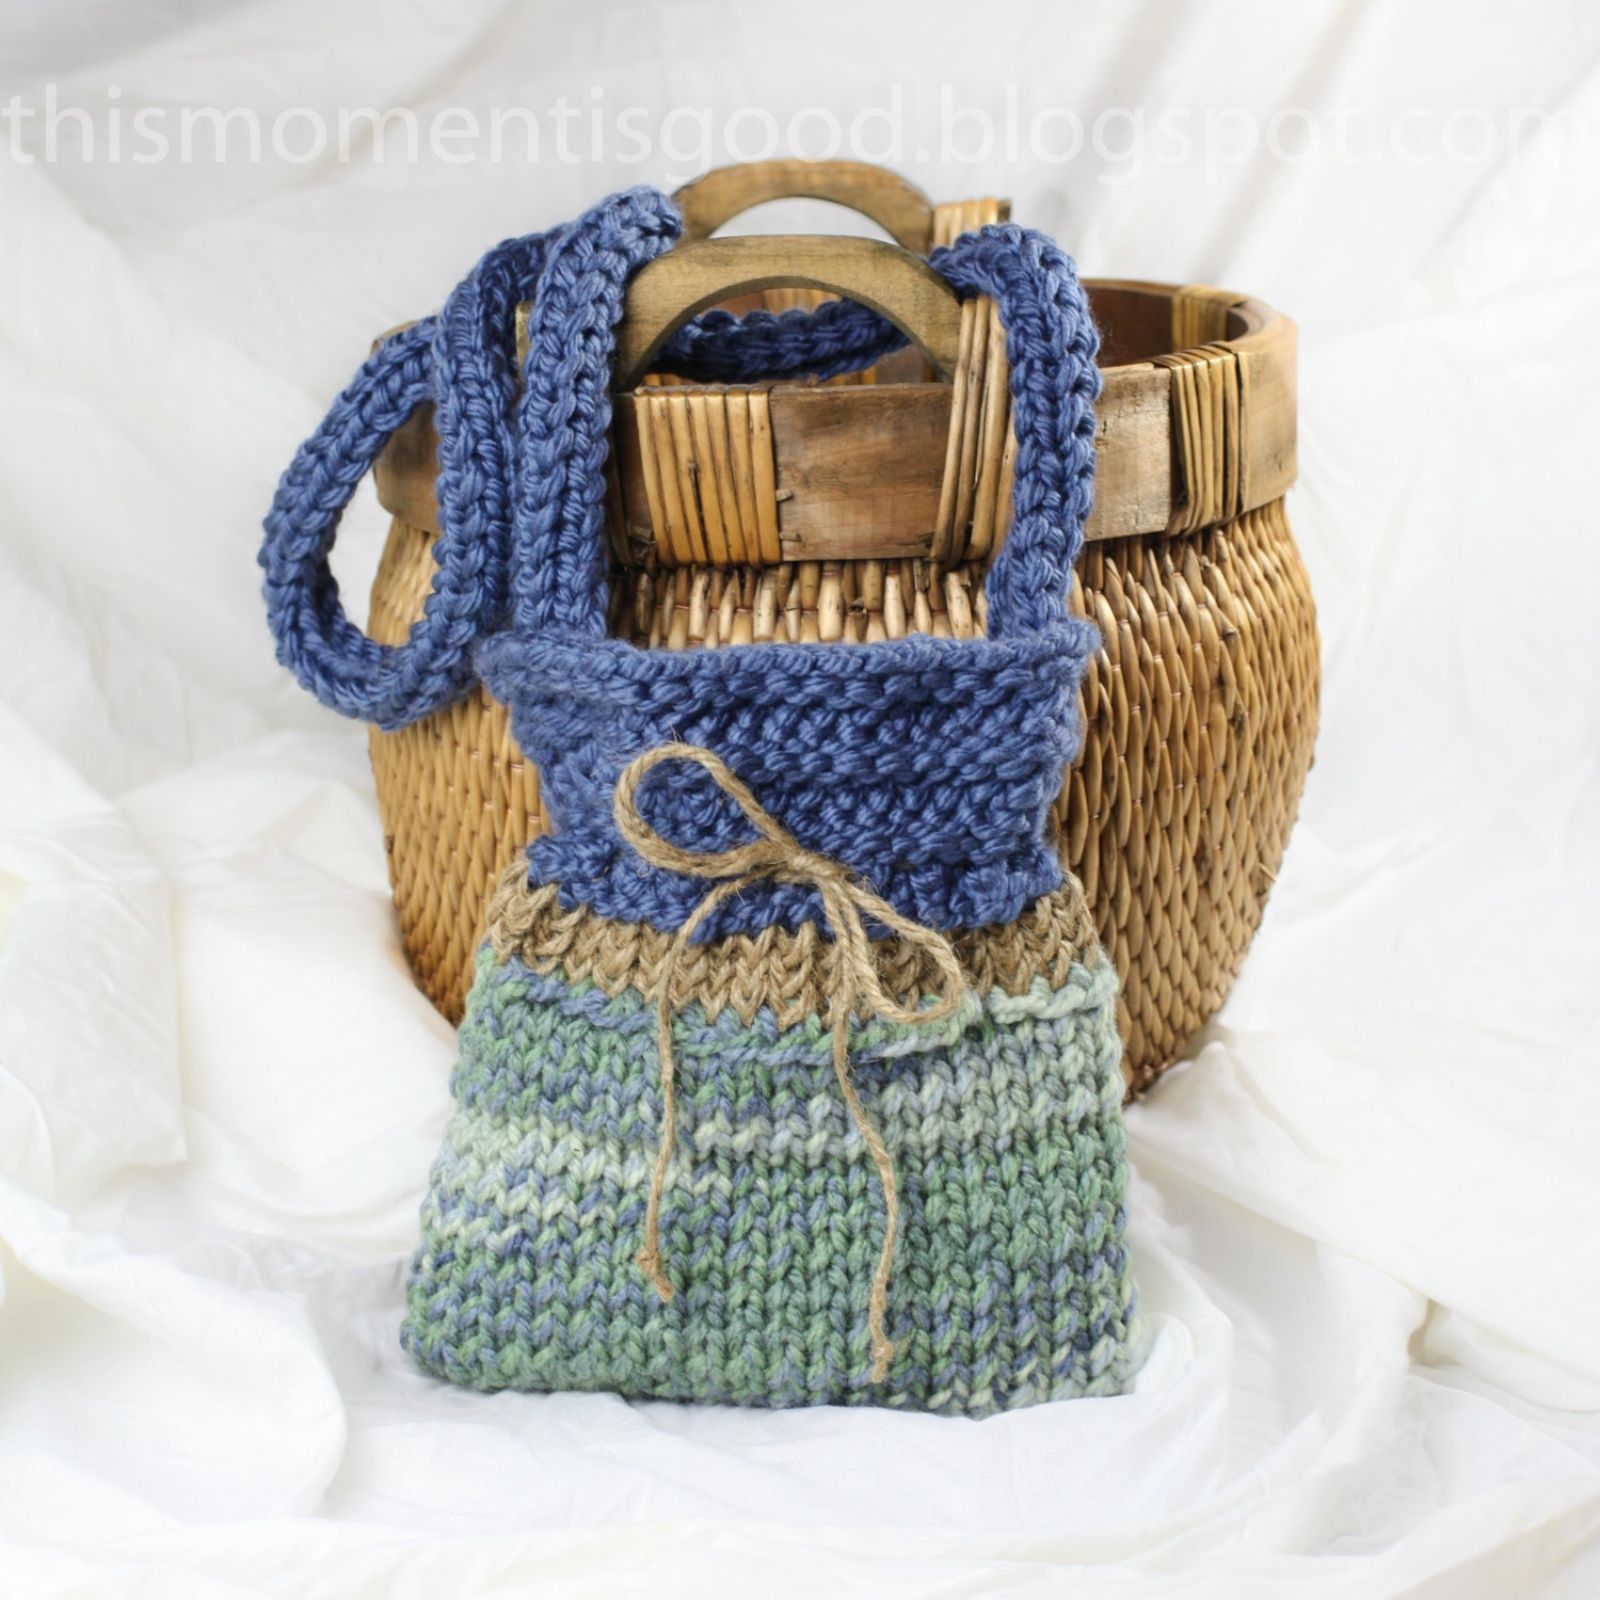 LOOM KNIT HANDBAG PATTERN | This Moment is Good